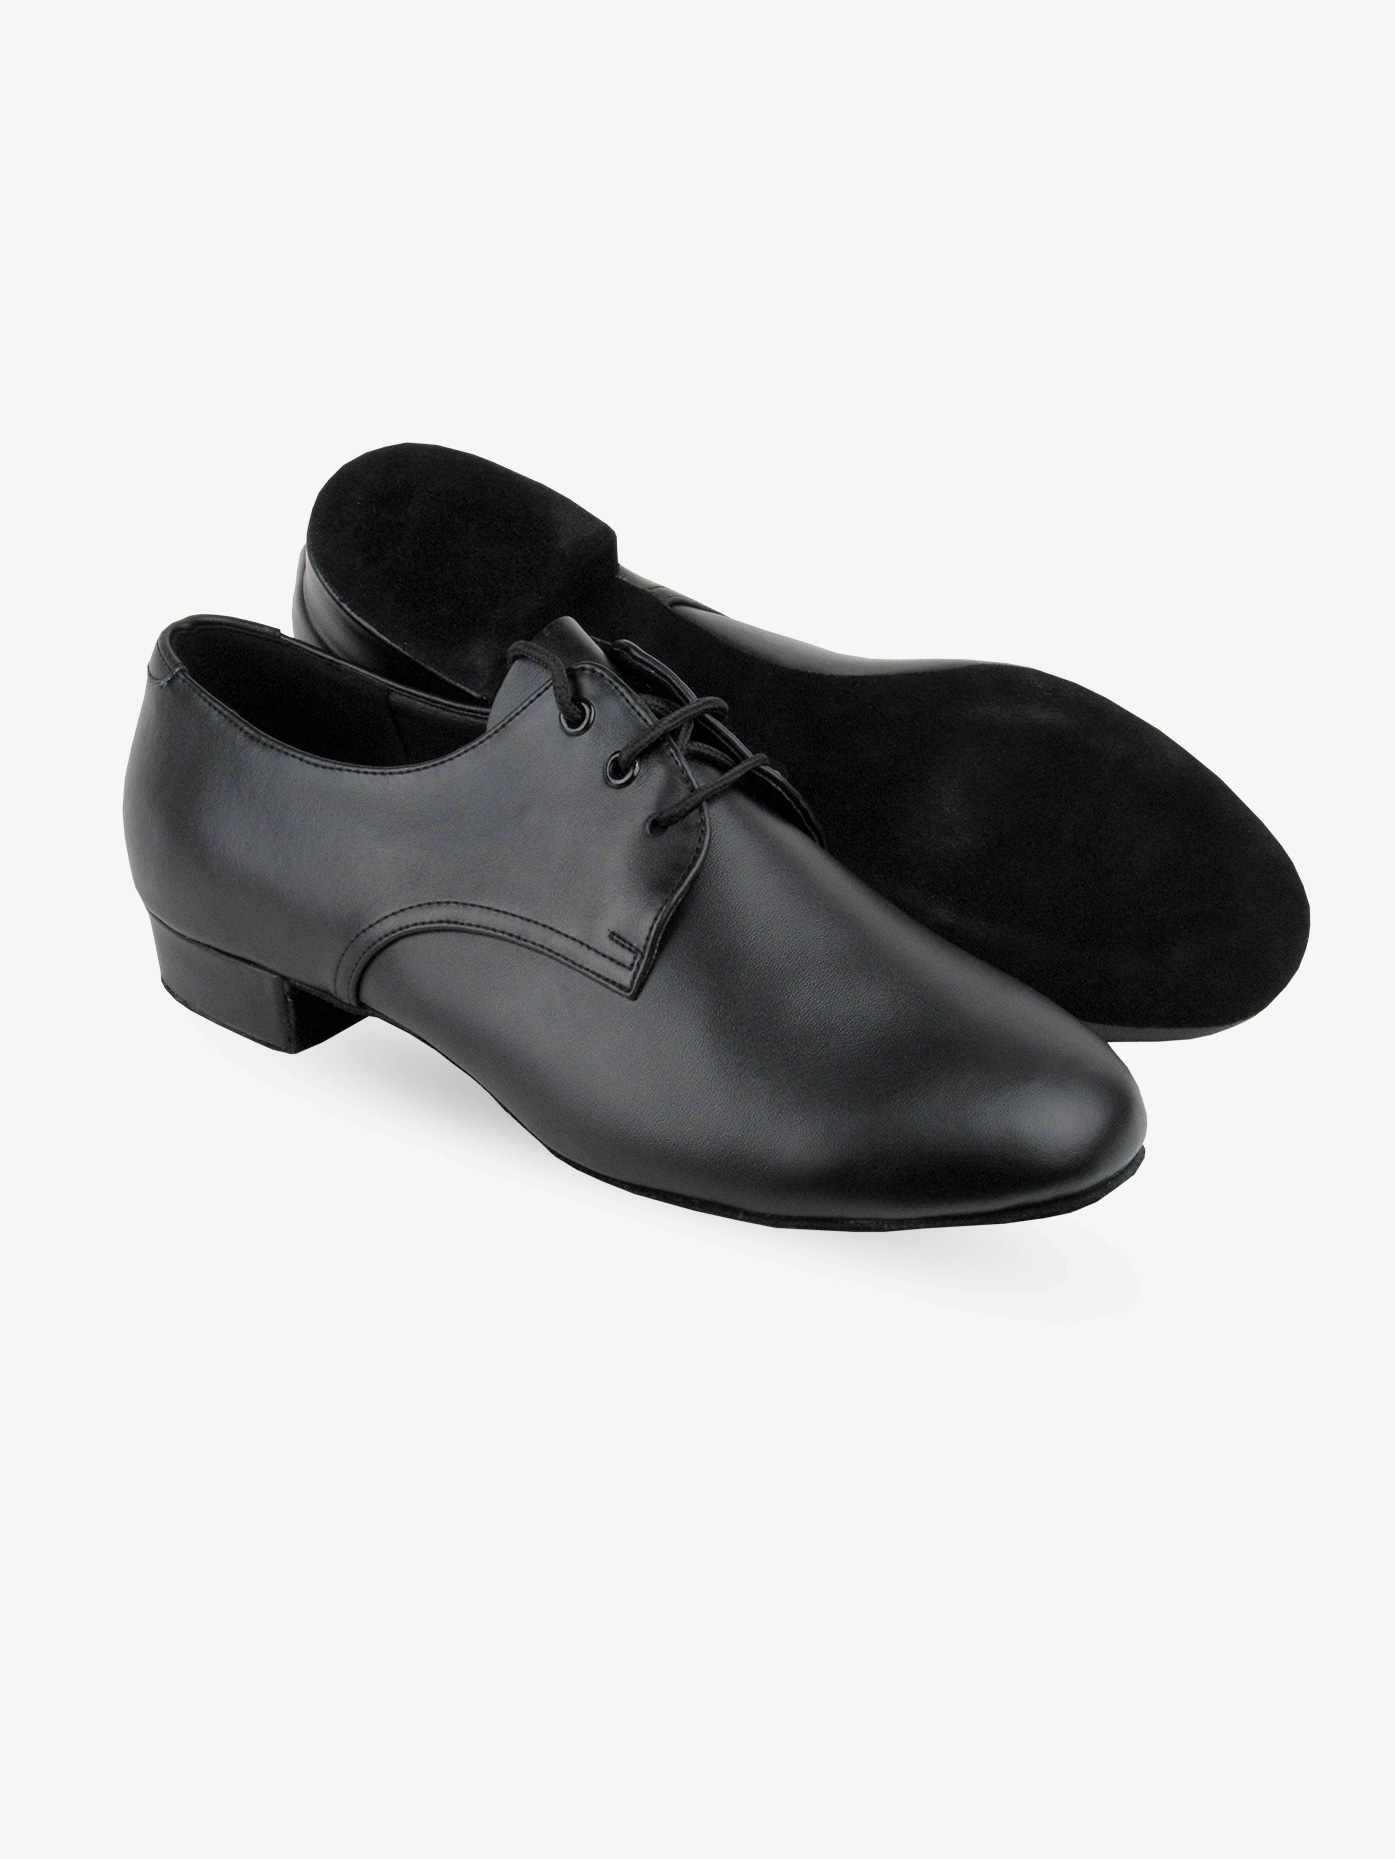 Very Fine Shoes Mens Standard-Classic Series Ballroom Shoes 916103